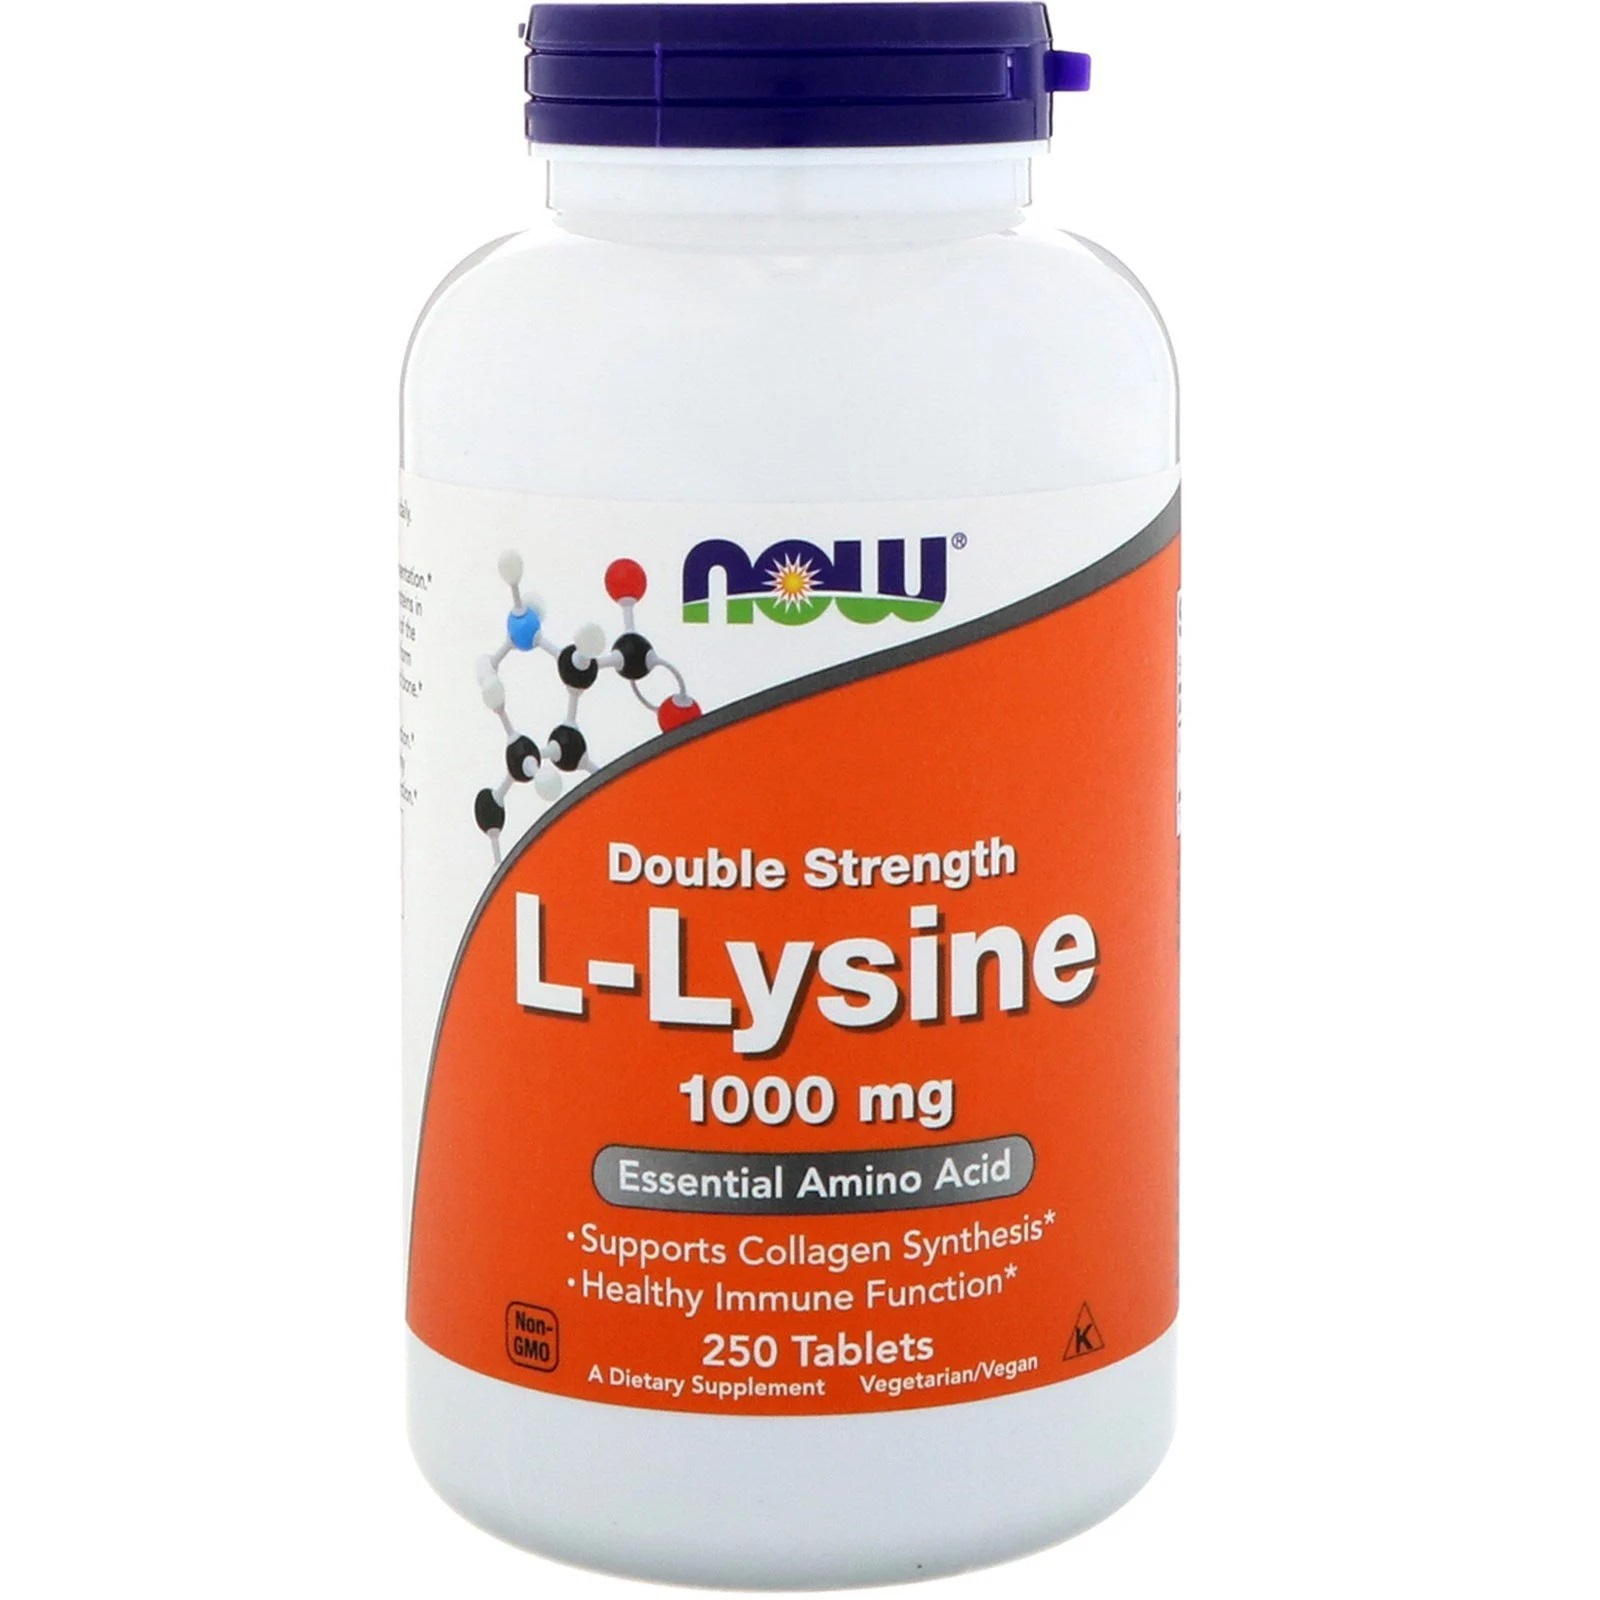 Image of L-Lysine- 1000 mg (250 tablets) - Now Foods 0733739001238